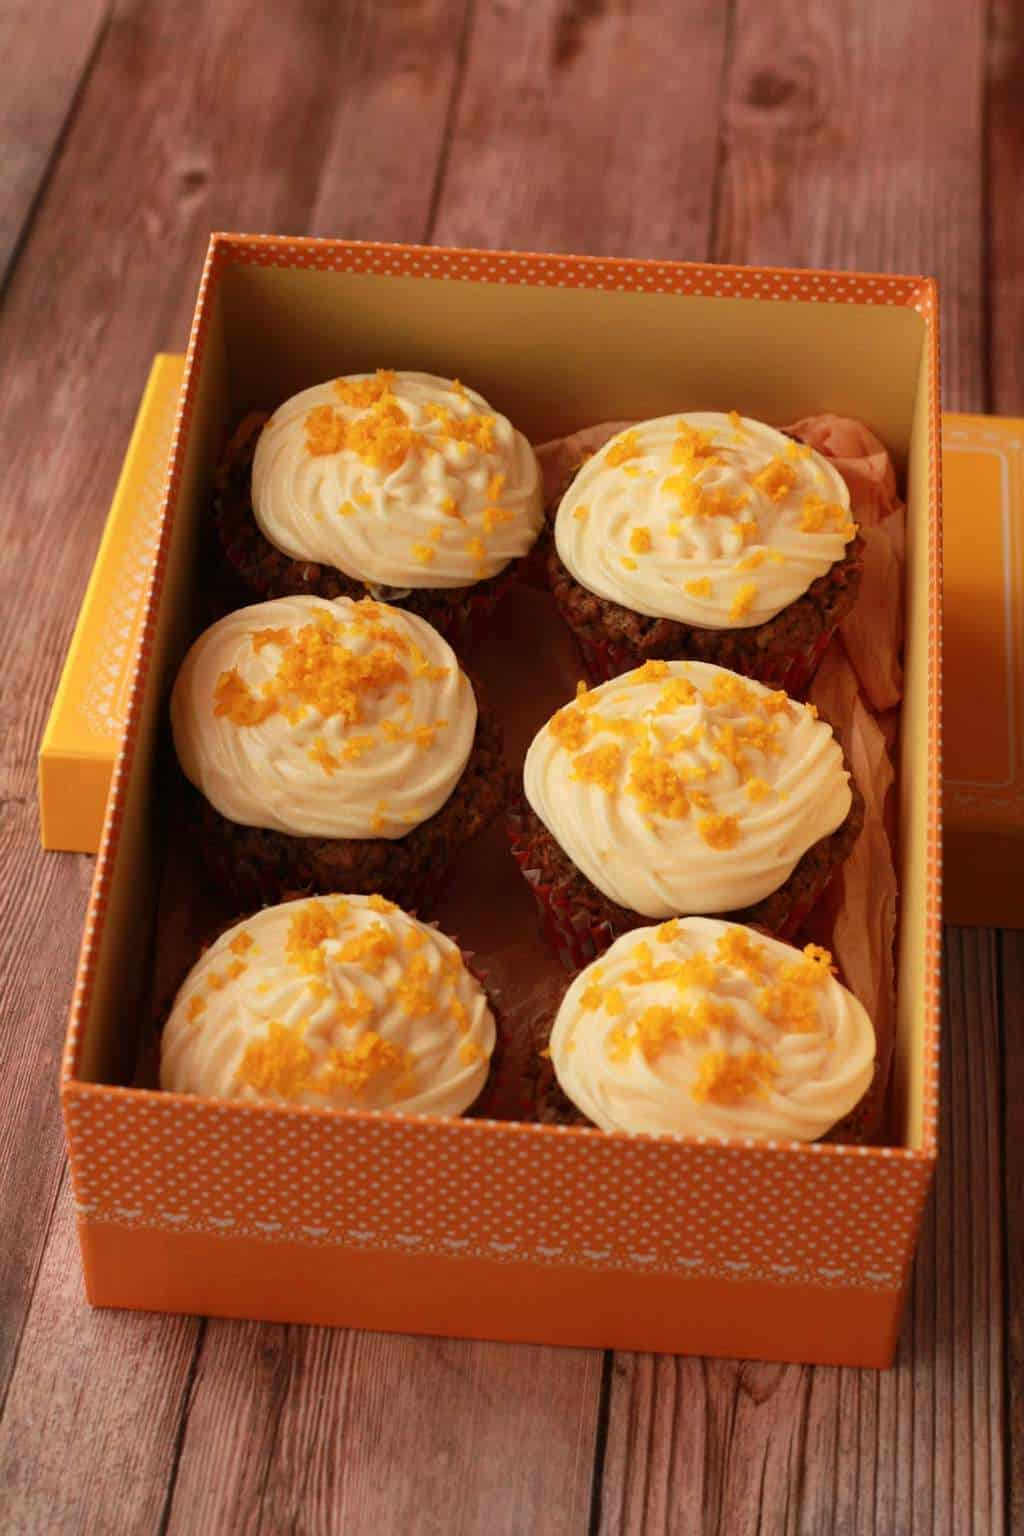 Carrot cake cupcakes topped with orange frosting and orange zest in an orange box.